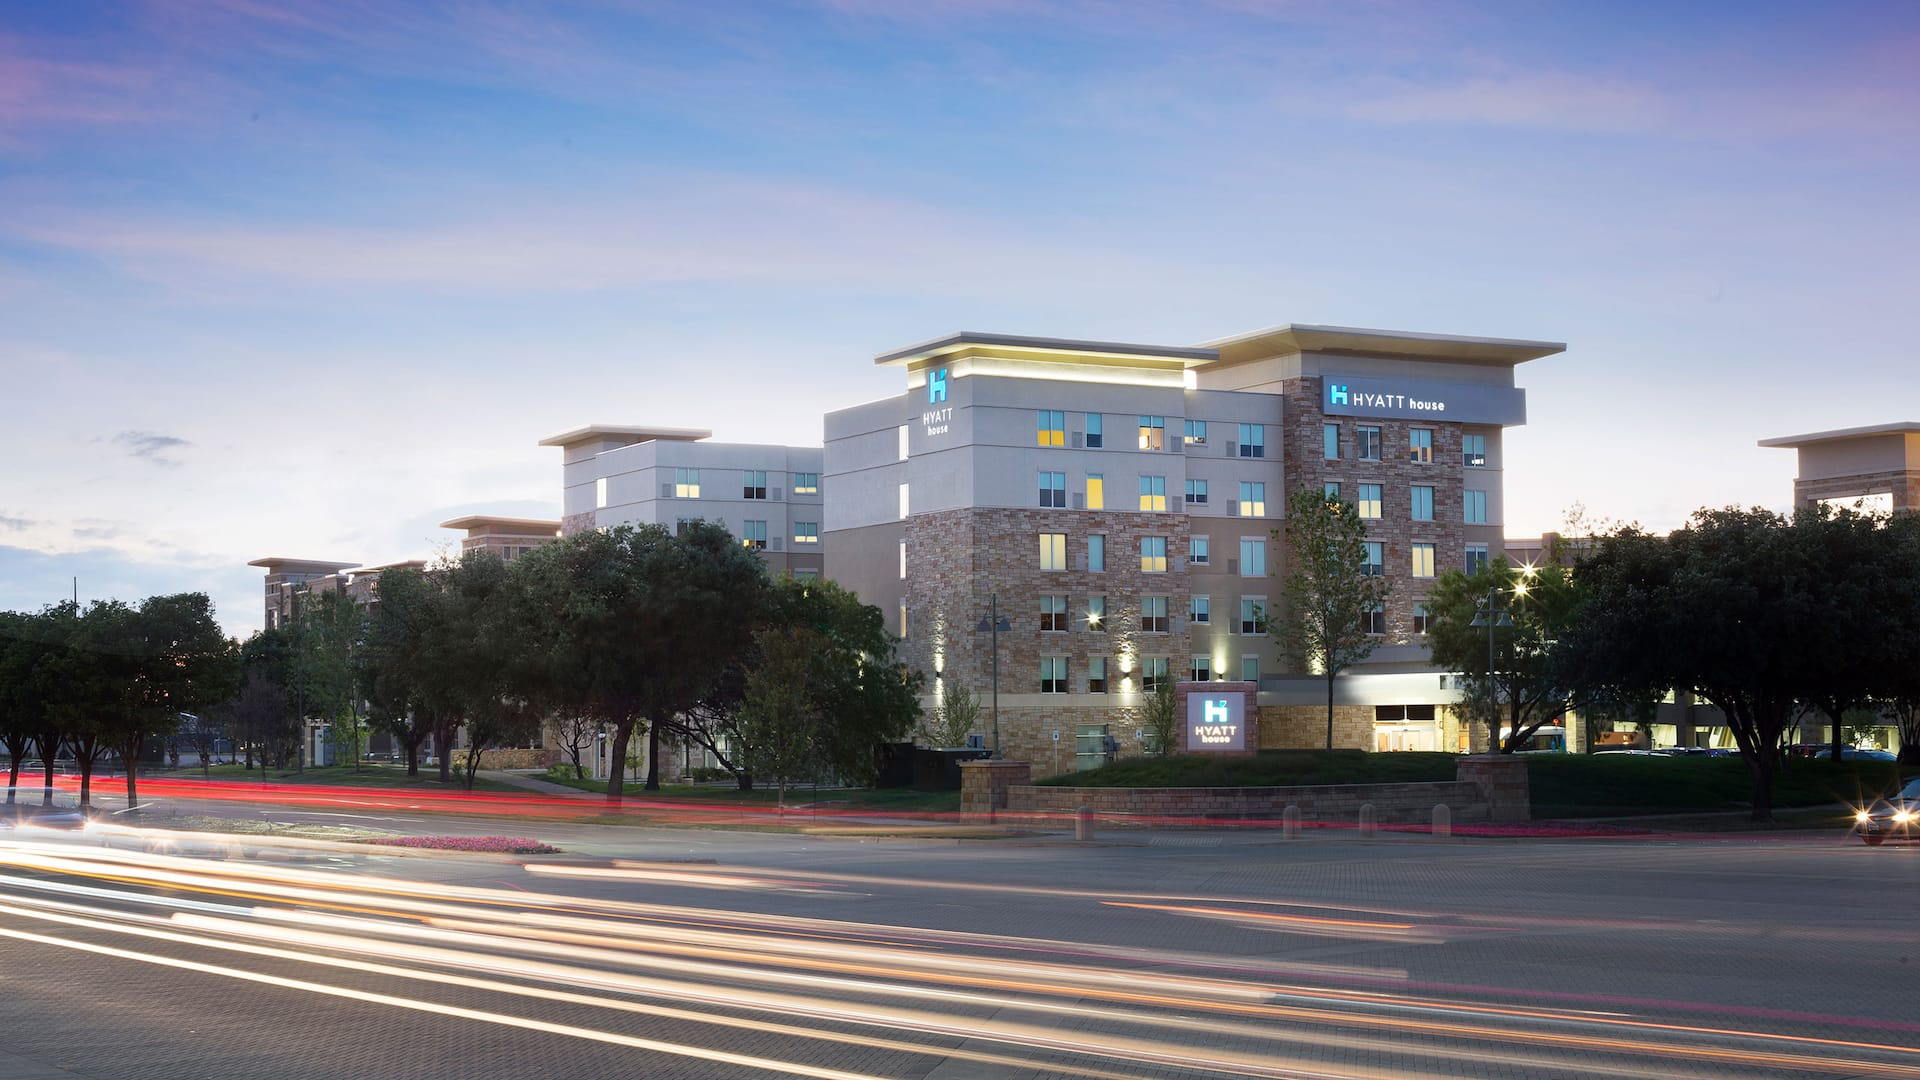 Hyatt House Frisco, TX, near the Dr. Pepper Arena